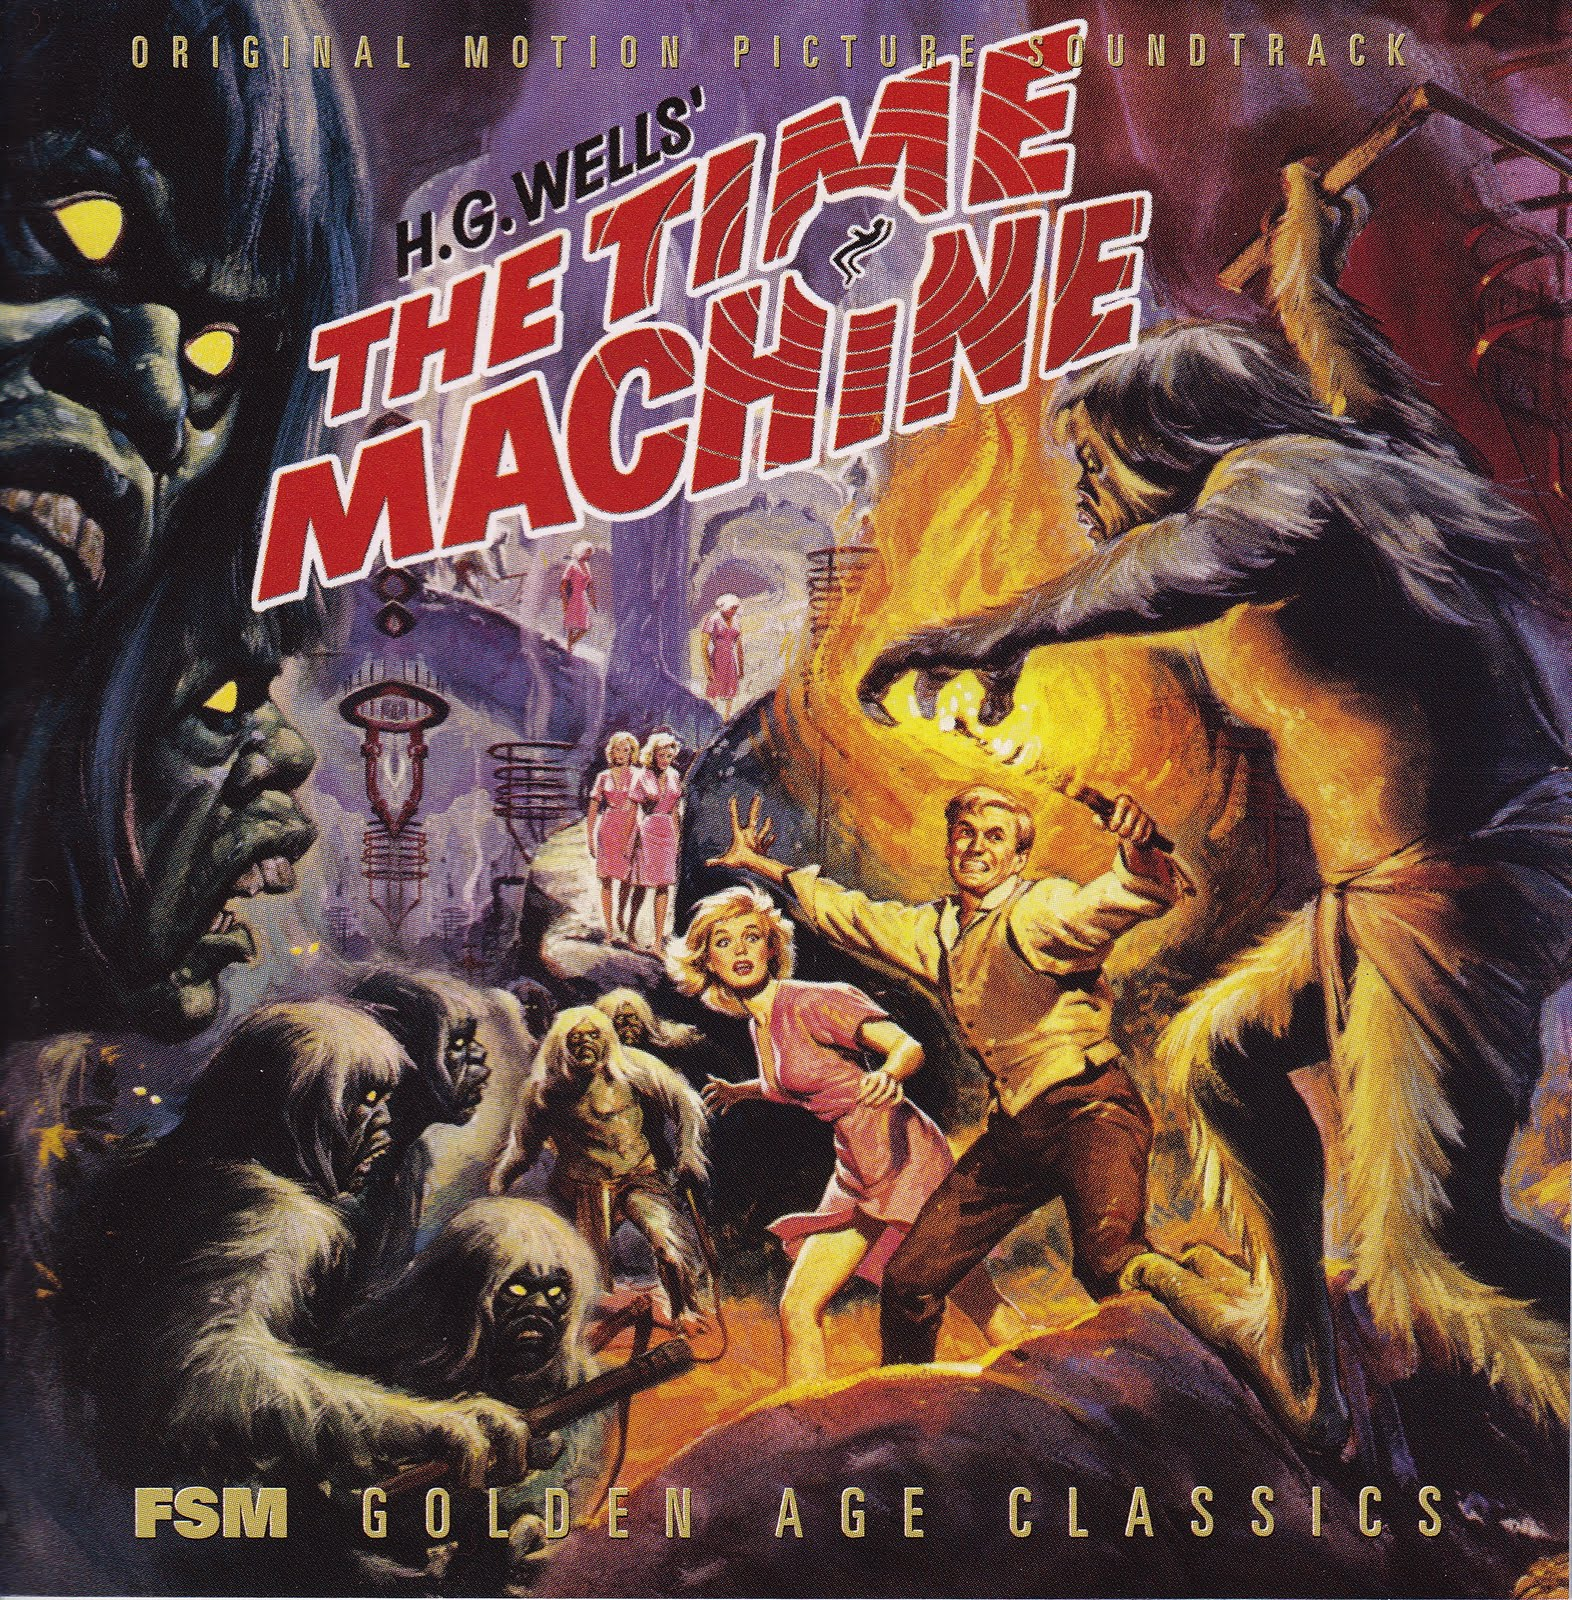 http://auremmoser.files.wordpress.com/2012/04/time-machine-cover.jpg